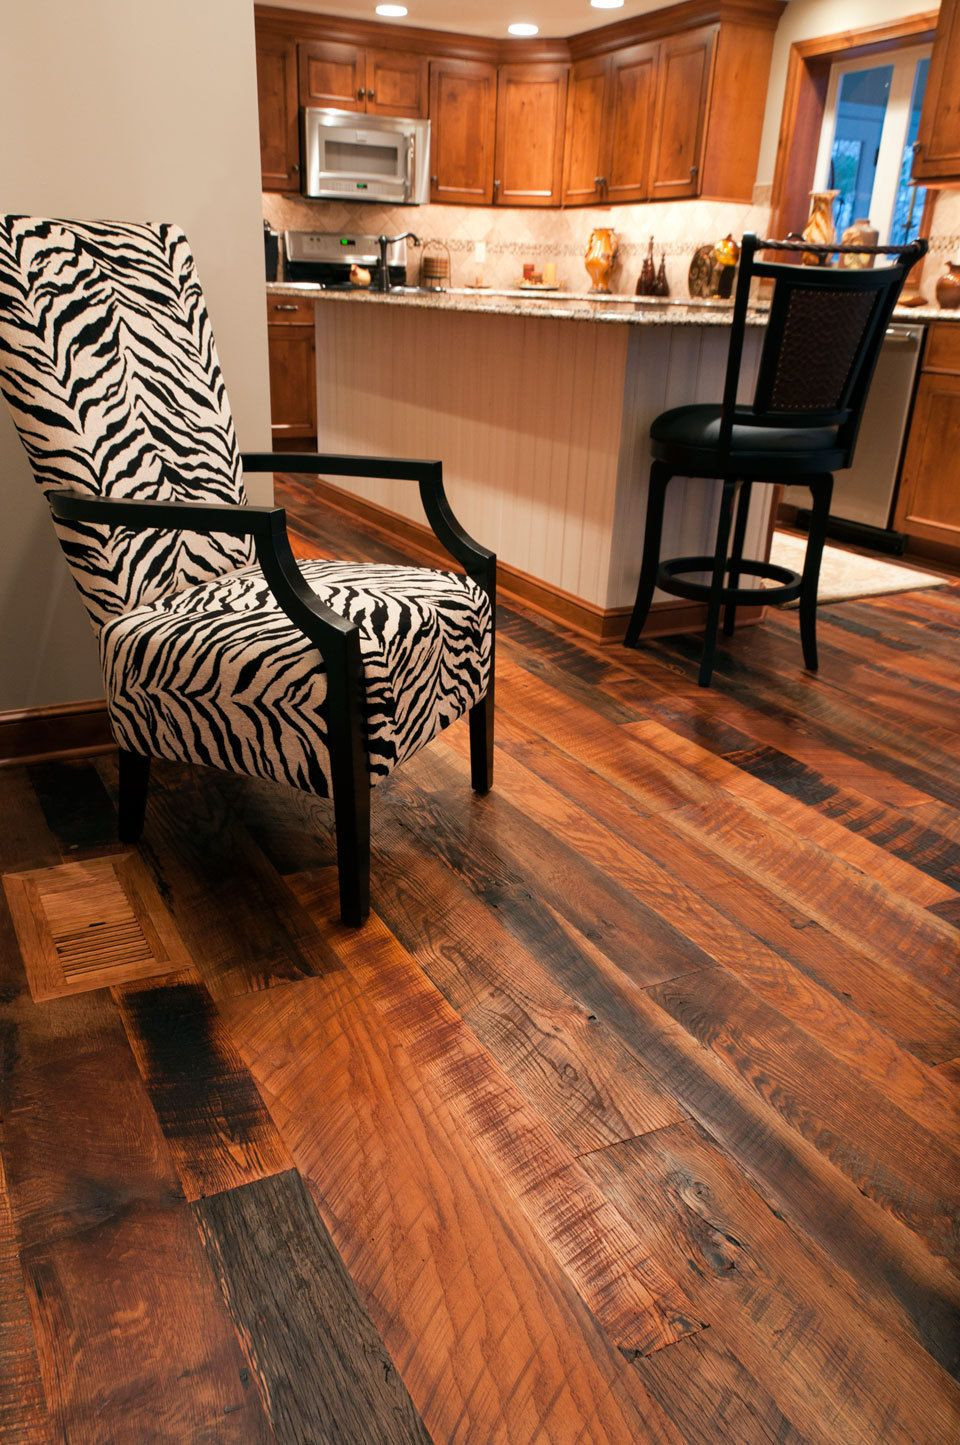 26 Ideal Reclaimed Hardwood Flooring for Sale 2021 free download reclaimed hardwood flooring for sale of reclaimed floorboards home ideas pinterest with reclaimed floorboards